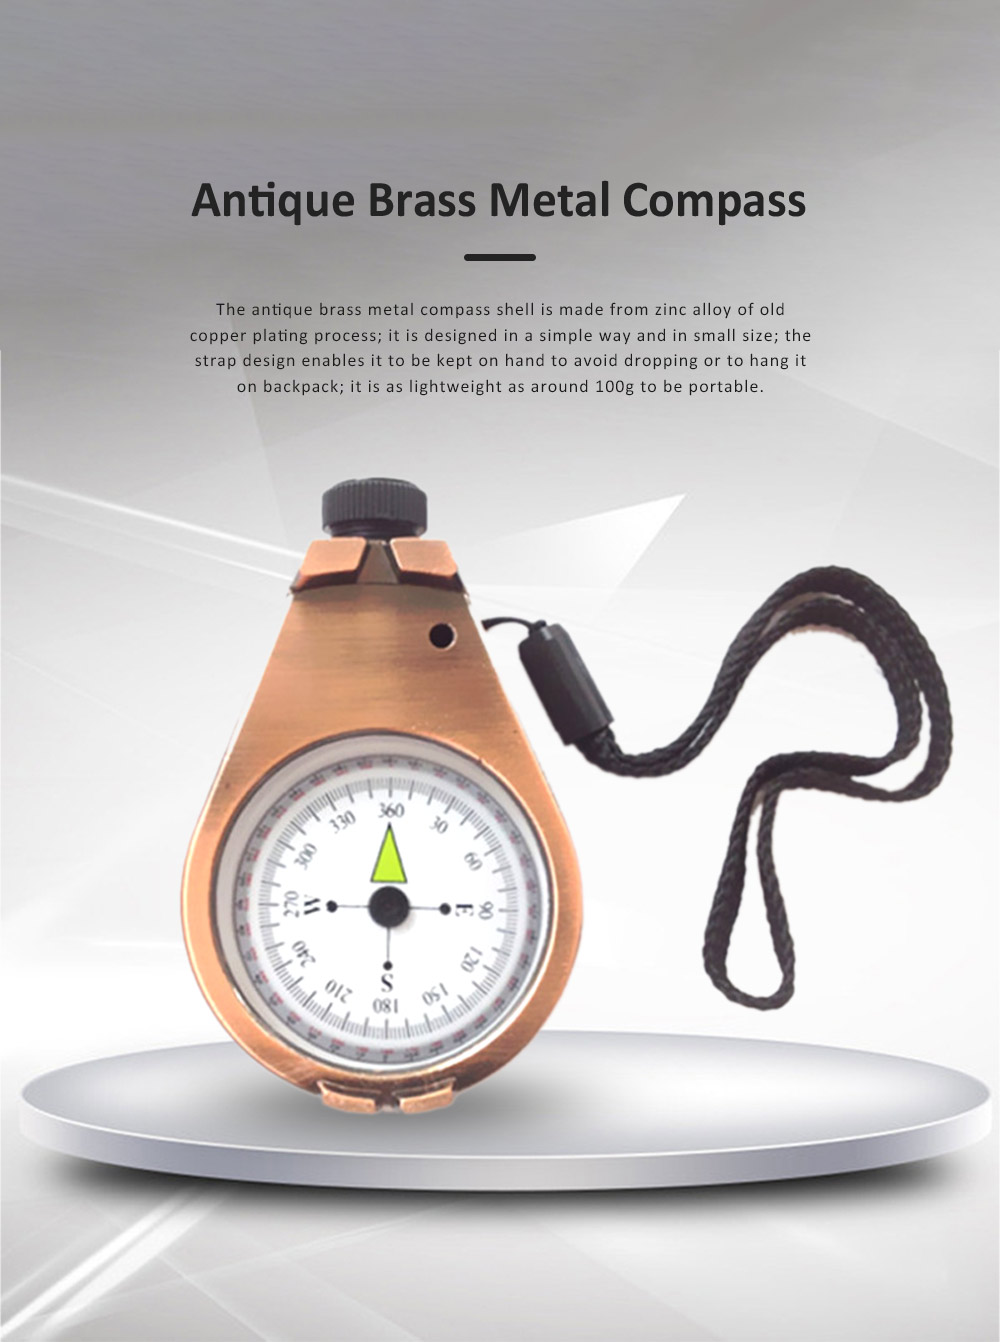 Antique Brass Color Metal Compass with Handle Strap for Outdoors, Camping, Hiking, High-end Quality Zinc Alloy North Arrow Outdoor Camp-out Accessory 0